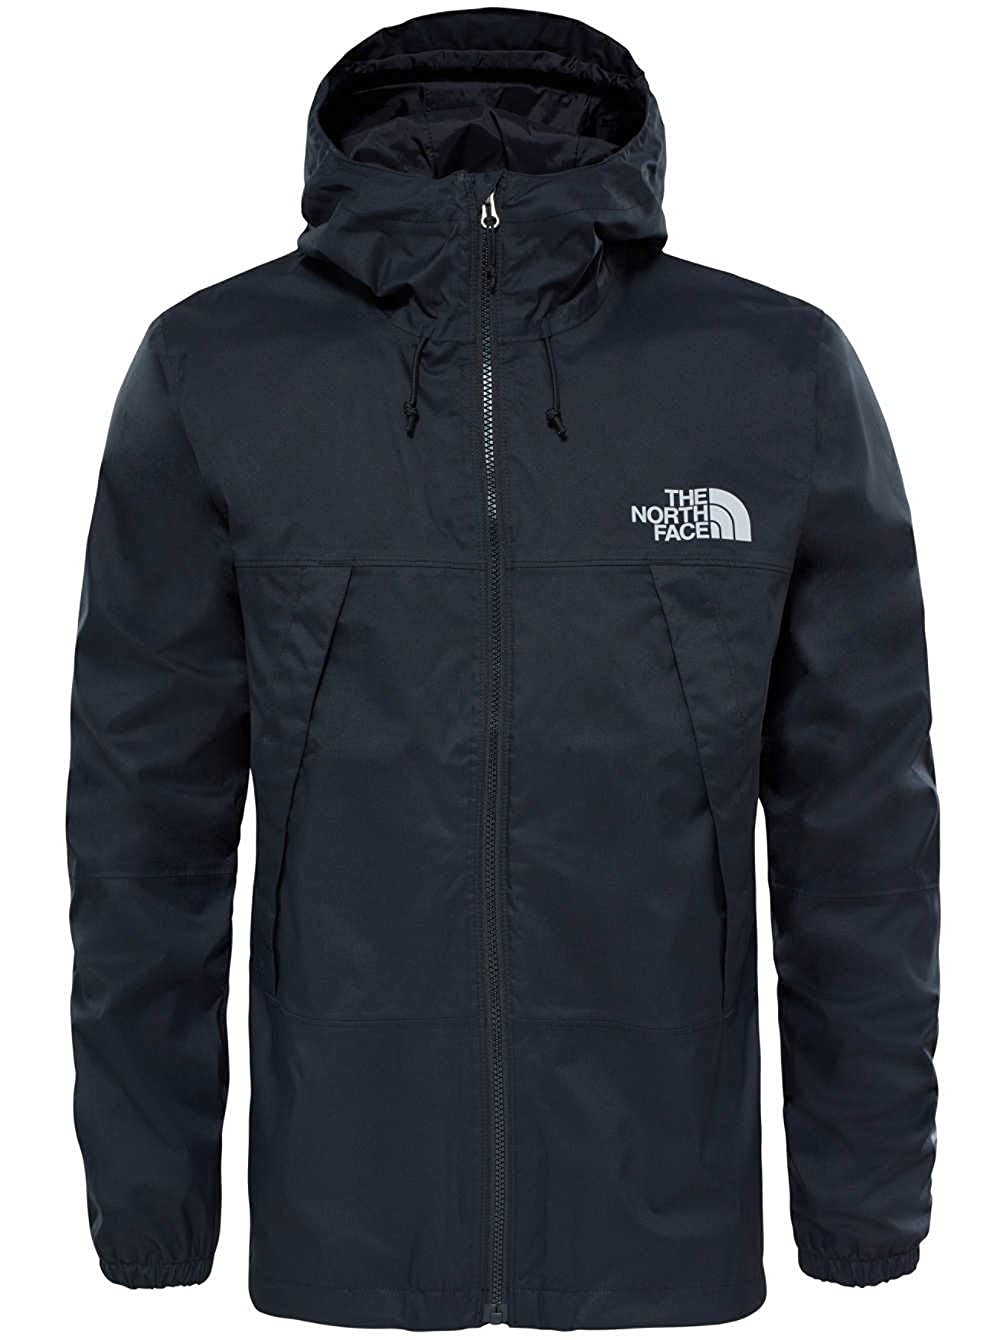 TALLA L. The North Face M 1990 Mountain Q Chaqueta, Hombre